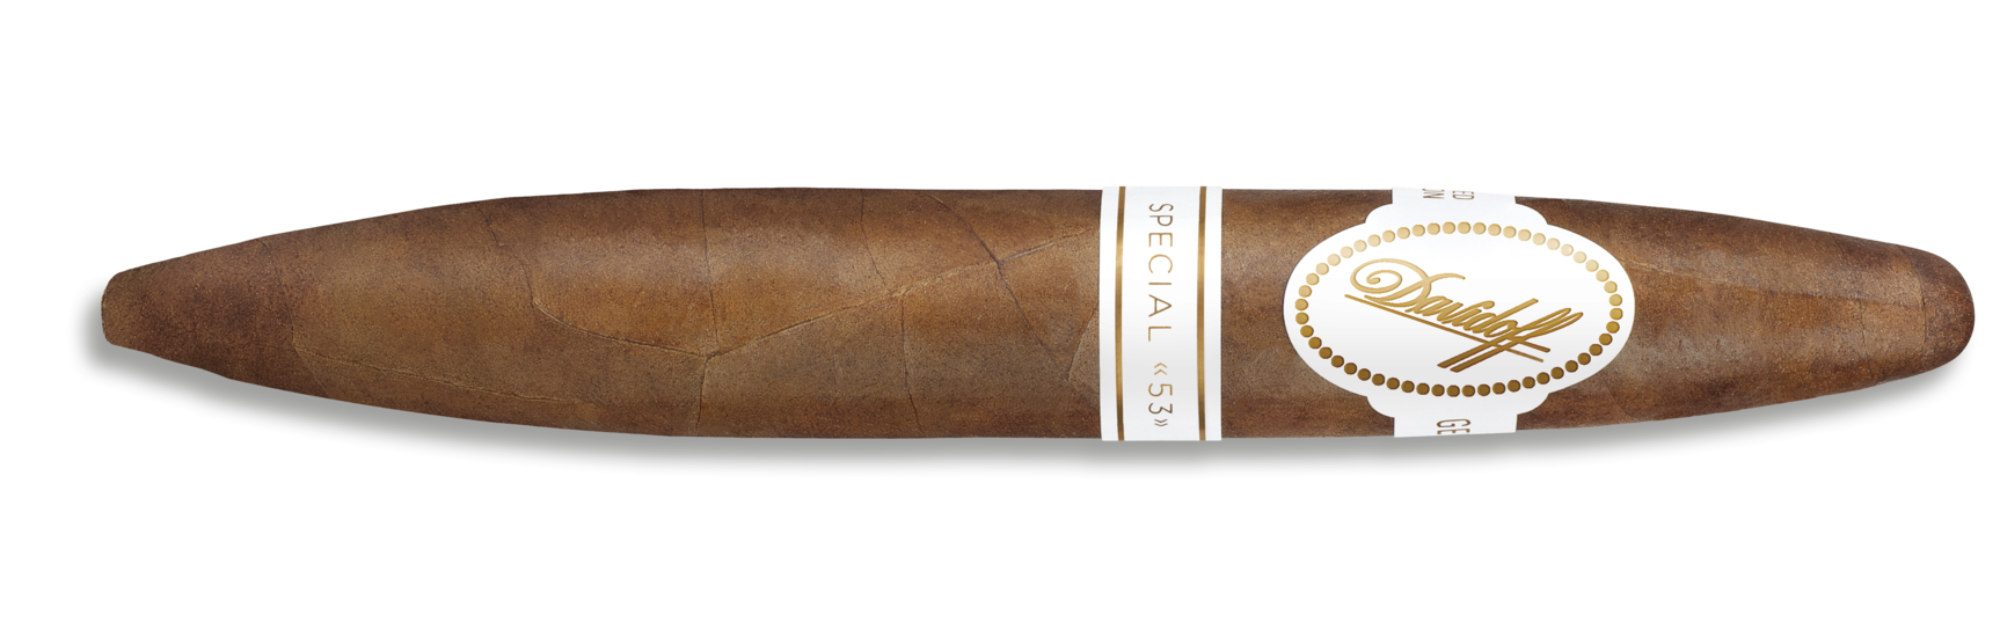 Davidoff Special 53 Capa Dominicana Limited Edition